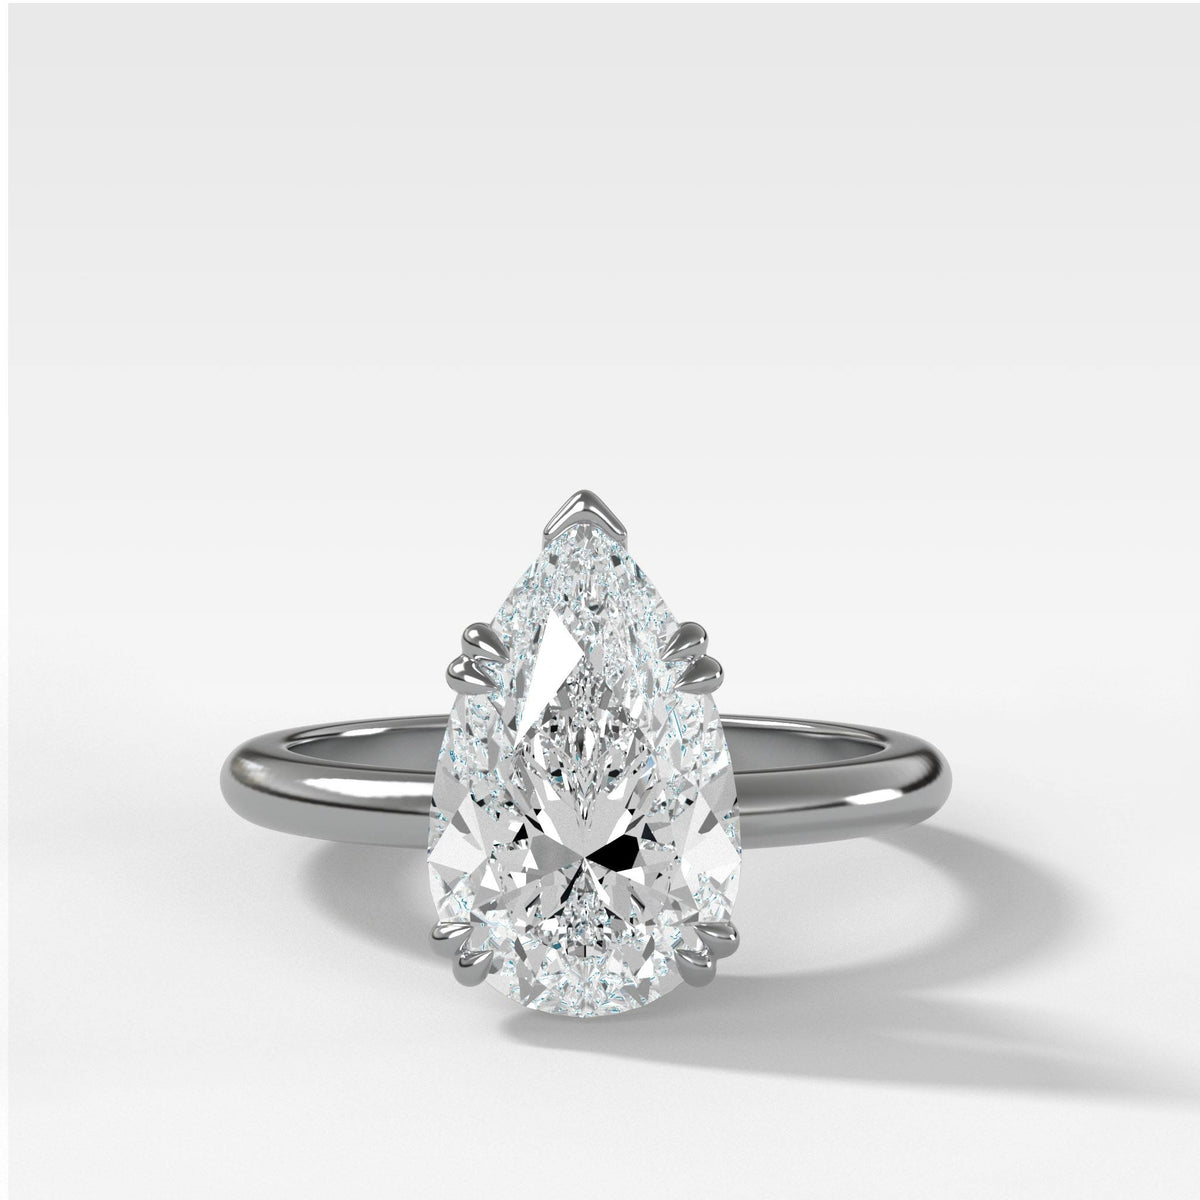 Signature Cathedral Solitaire With Pear Cut in White Gold by Good Stone